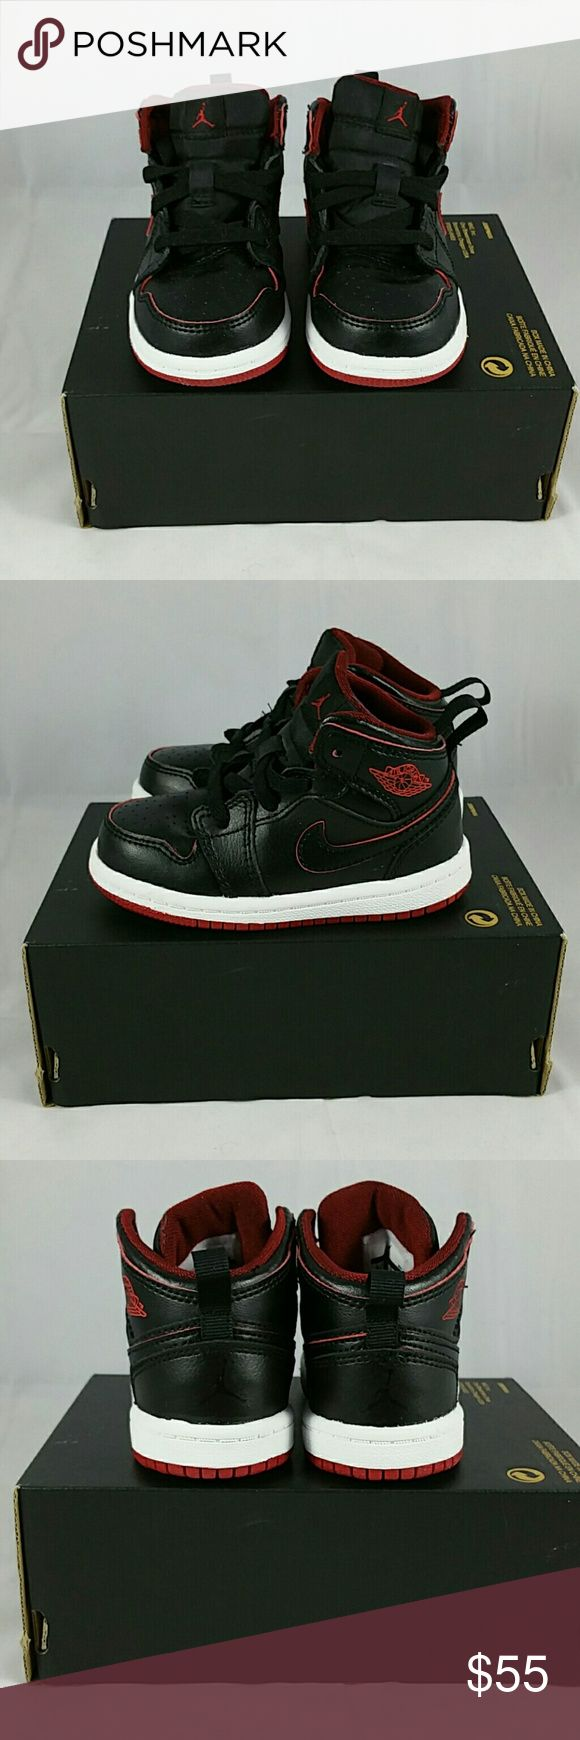 Kid's Jordan Shoes Michael Jordan 1 Mid BT Size - 6C Color - Black/White/Gym Red  Can be worn by boys or girls facebook.com/CombsConnection/shop Nike Shoes Sneakers